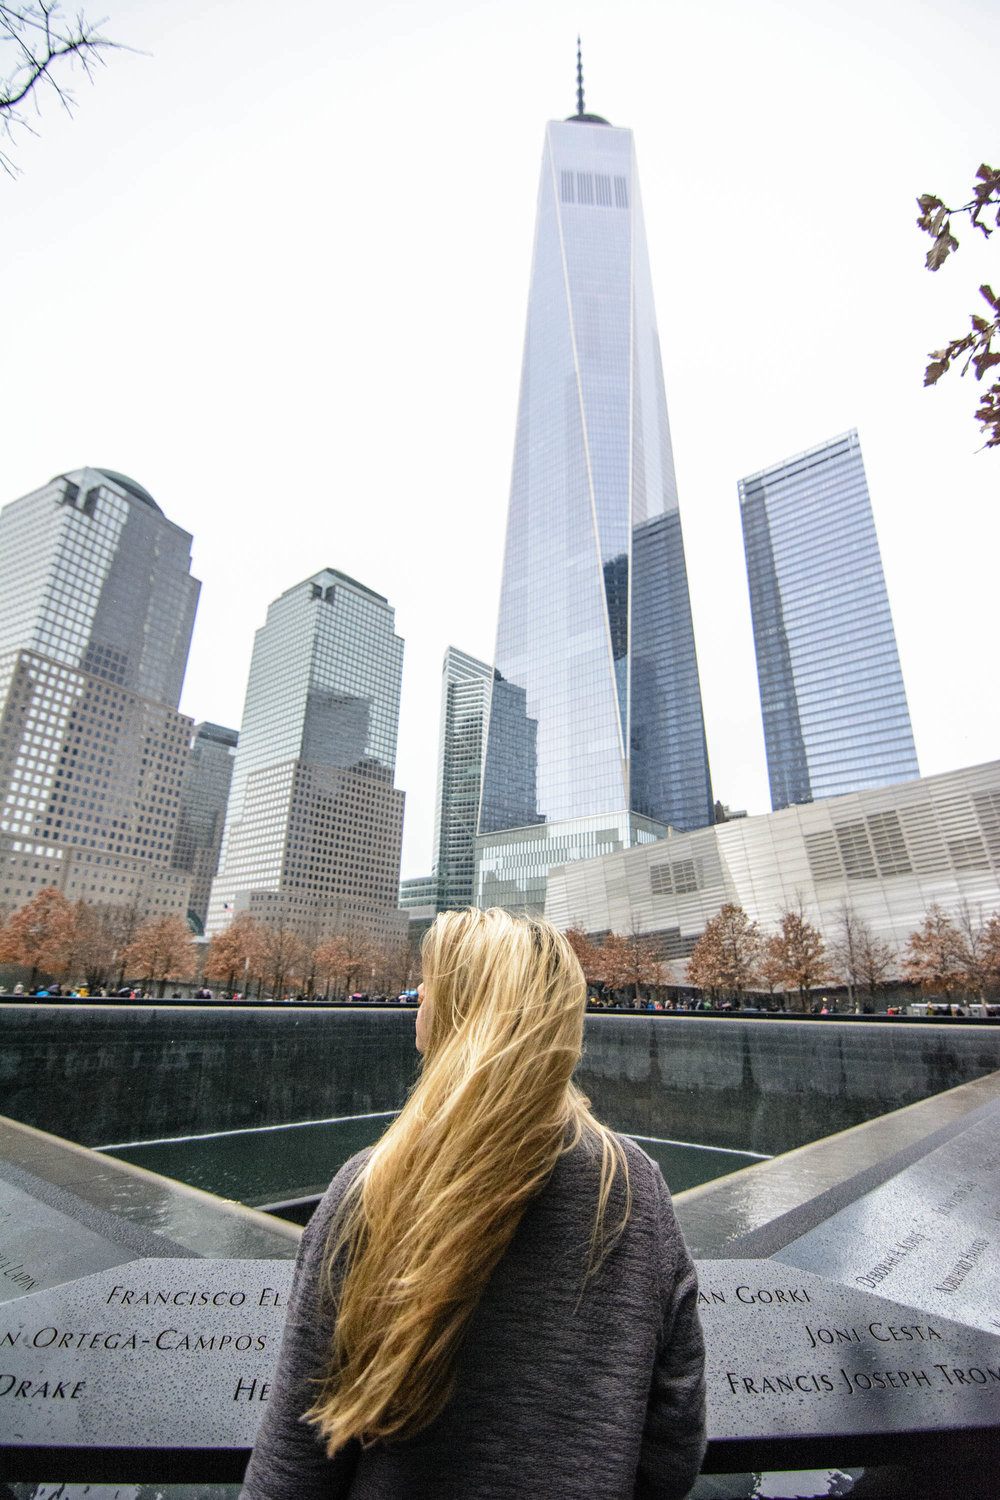 9/11 Memorial. It started raining the minute we walked up to view this incredible sight. I got goosebumps immediately and couldn't bare to leave just because of a little rain. If you make a visit, I highly suggest also going into the museum nearby.